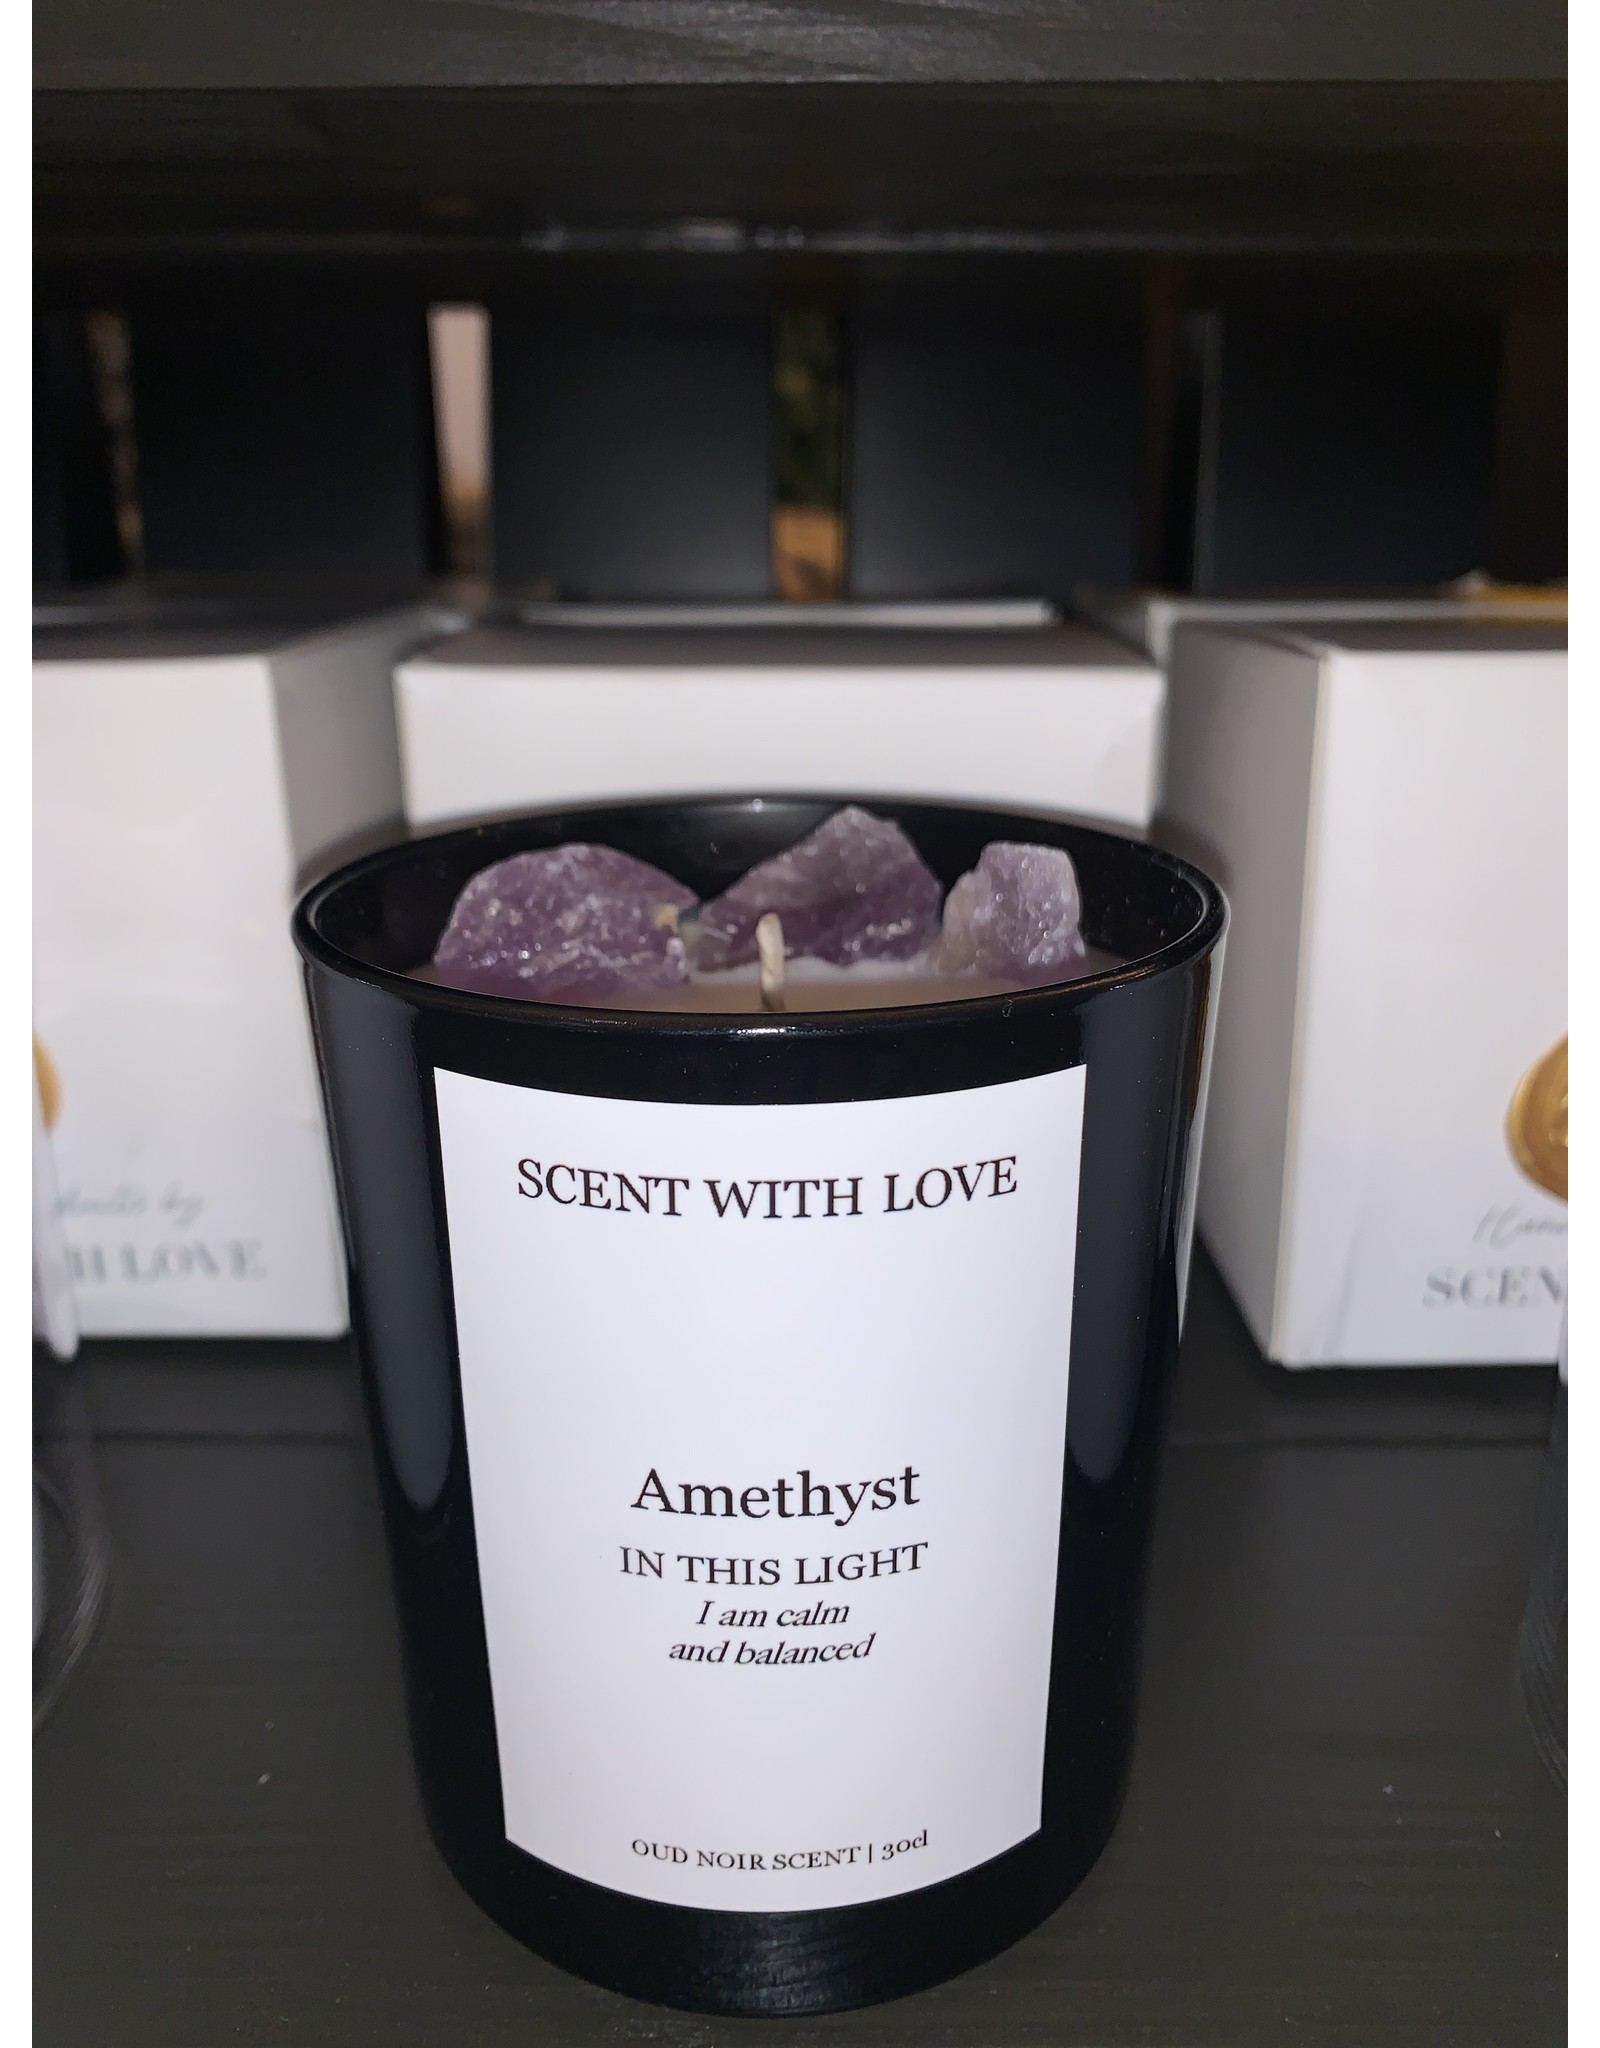 SCENT WITH LOVE Amethyst | Calm & Balanced